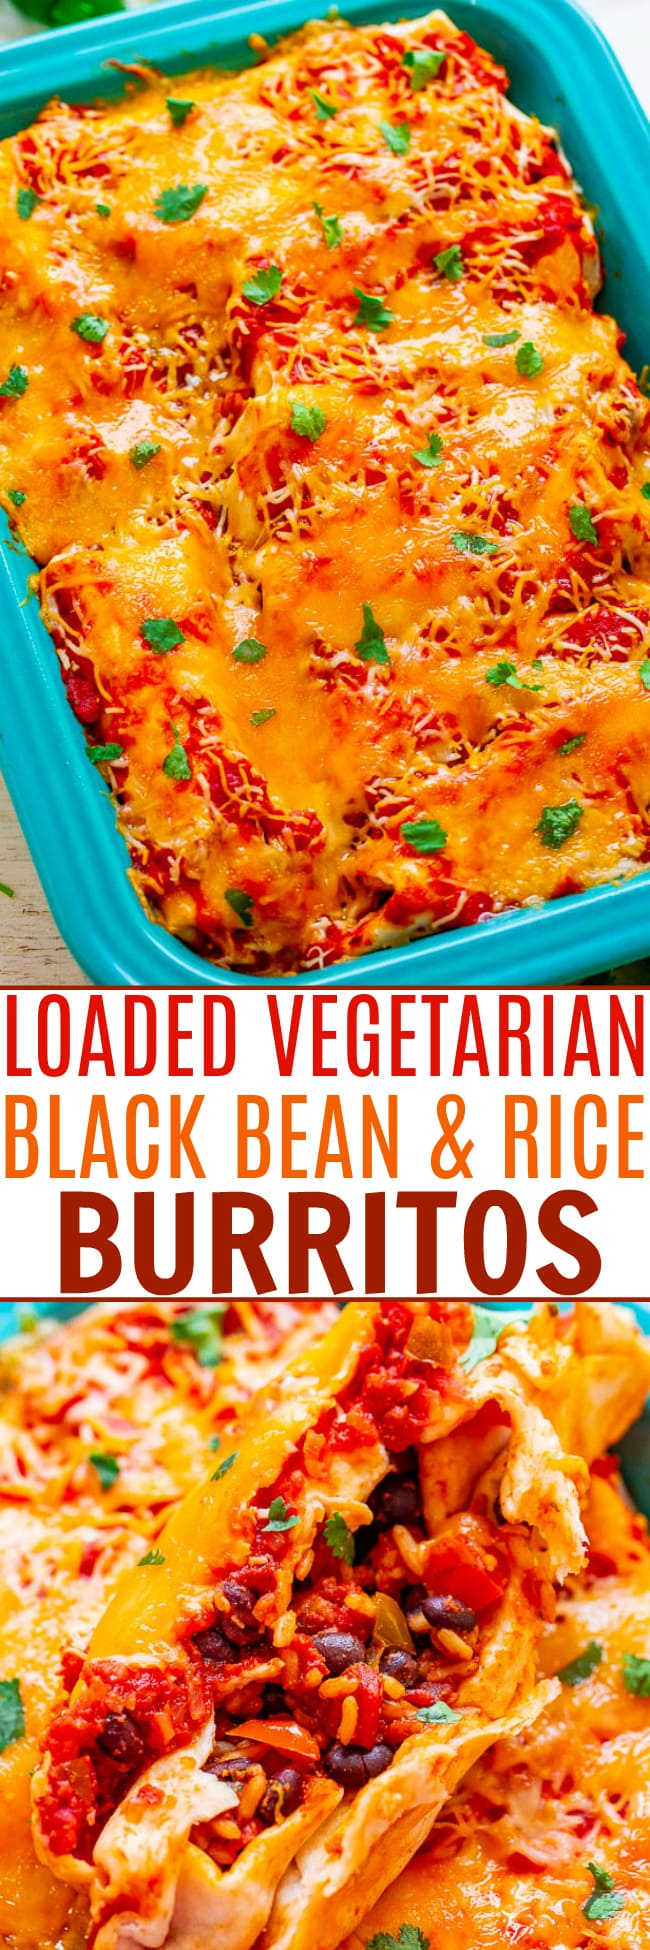 Loaded Vegetarian Burritos — HEALTHY Mexican comfort food that's loaded with black beans, rice, and more before being topped with salsa and CHEESE!! You'll never miss the meat in these EASY burritos that you can make-ahead and are freezer-friendly!!